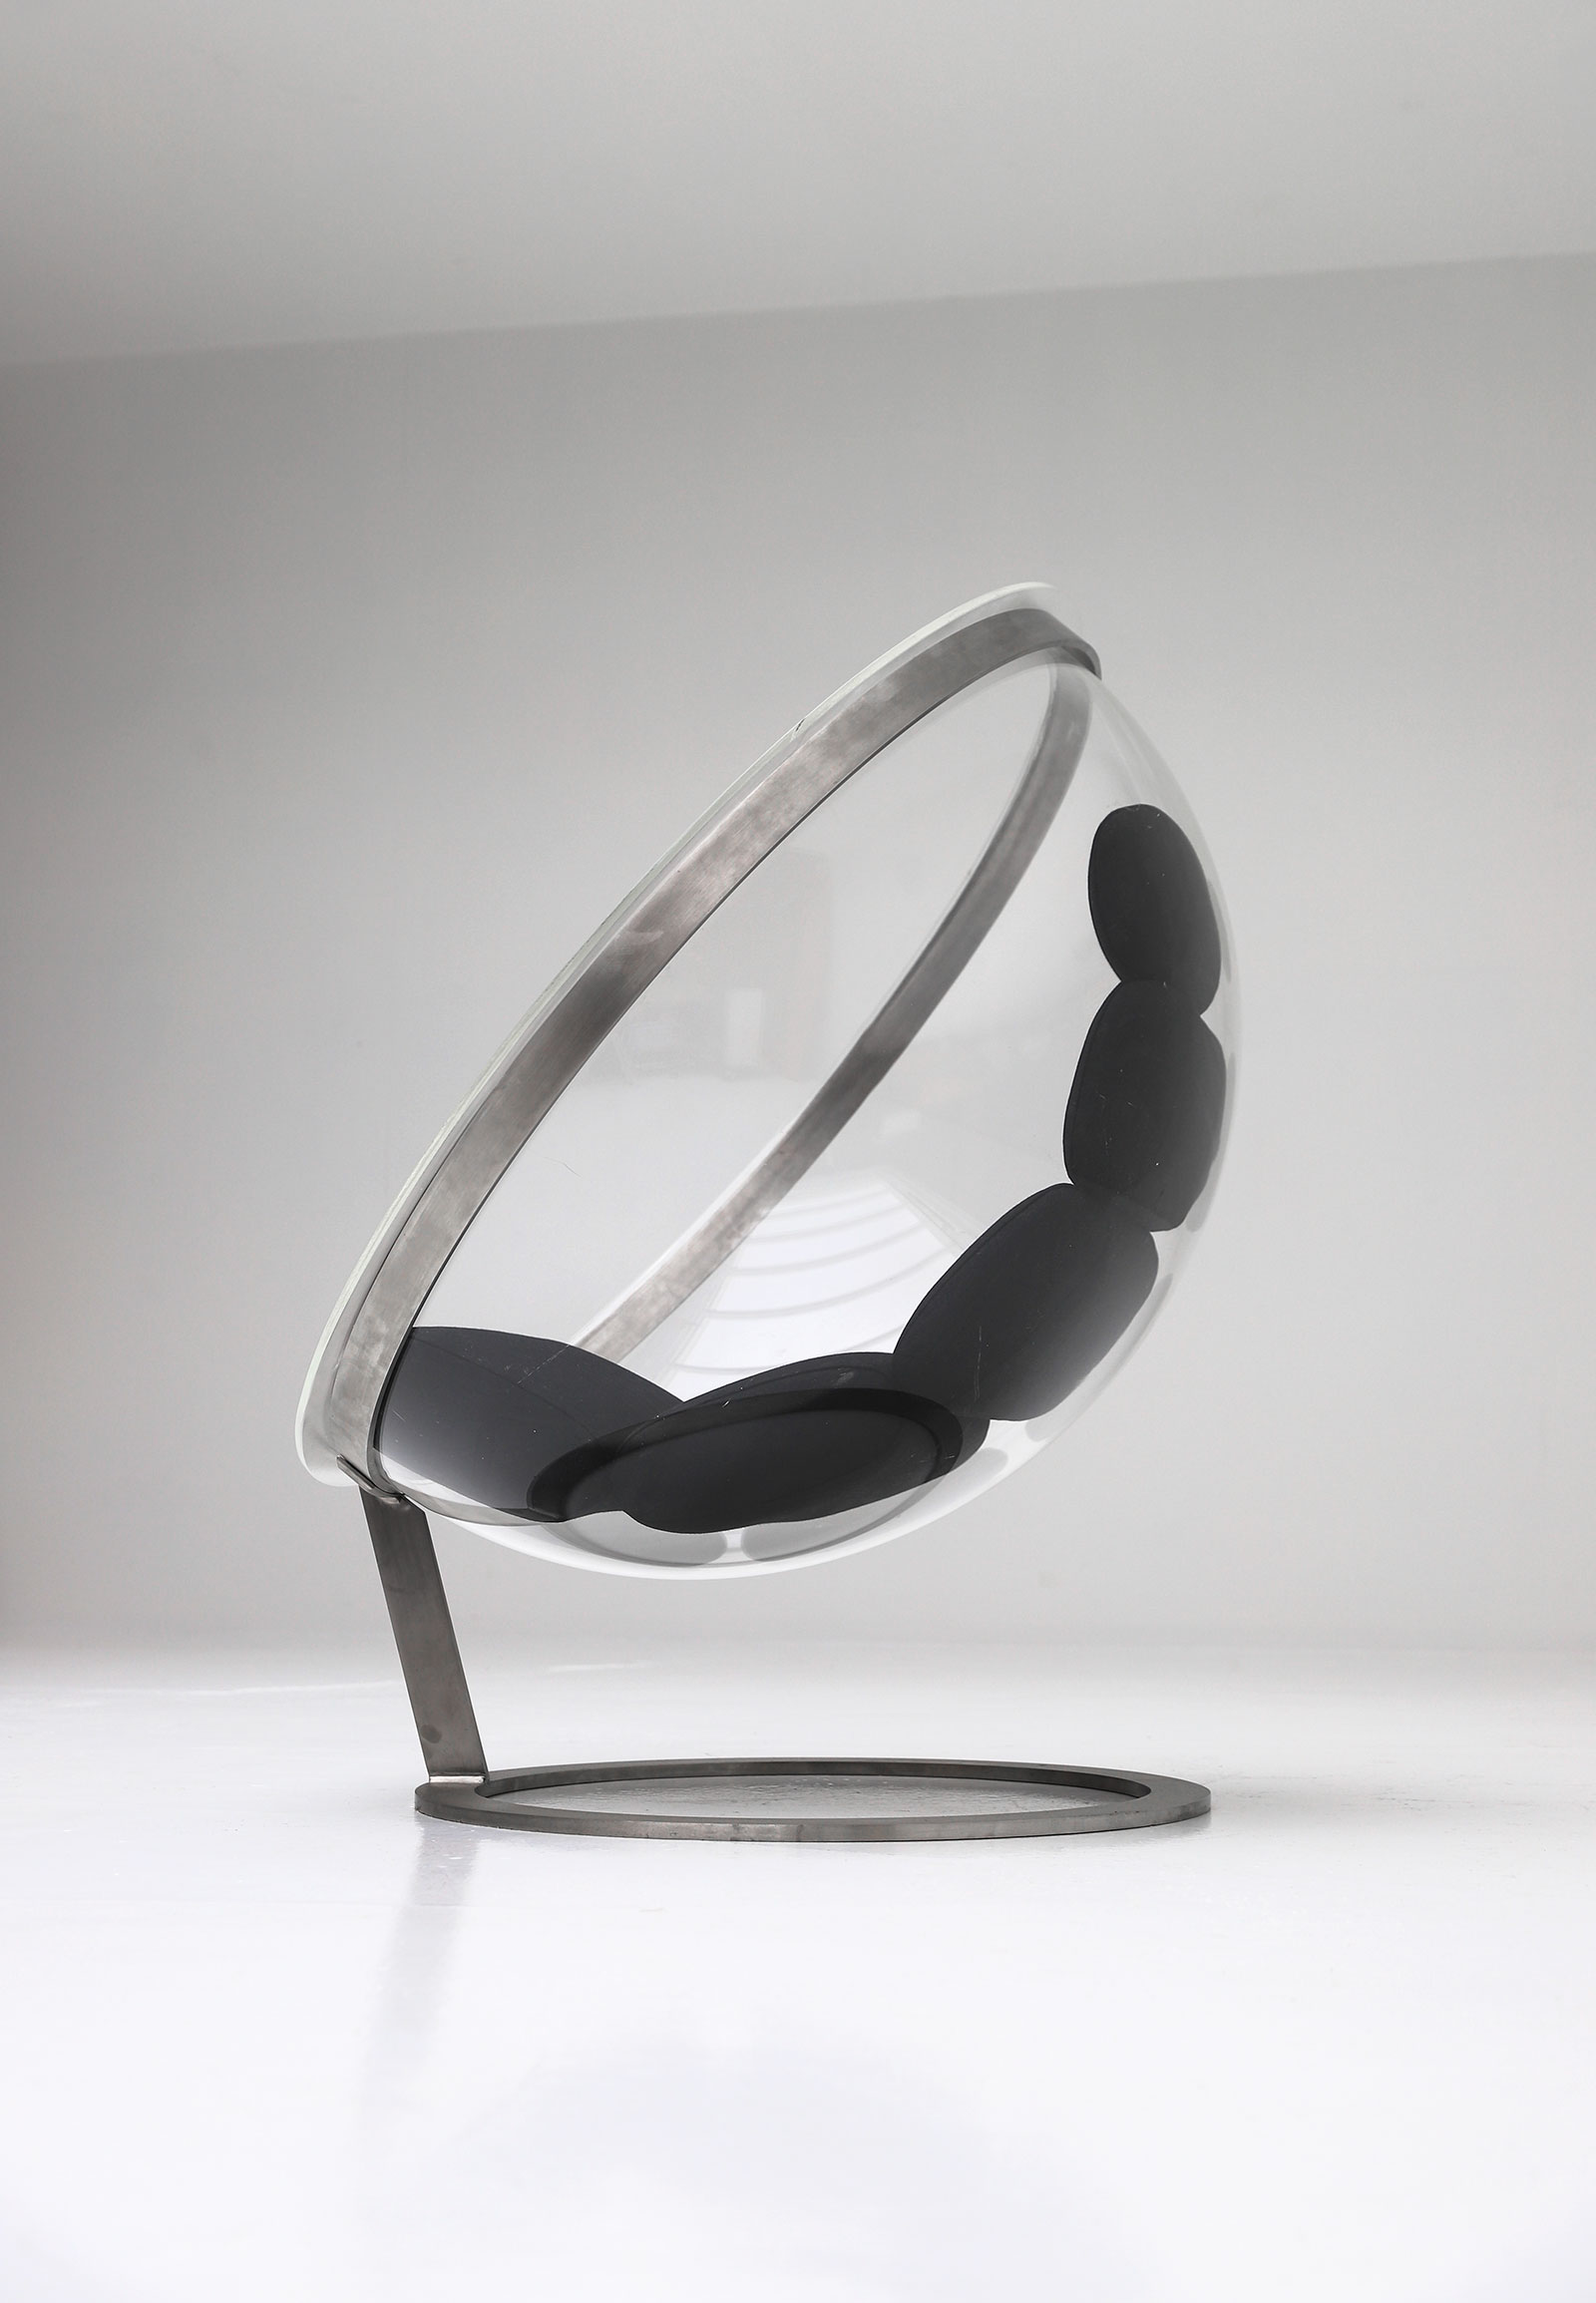 Bubble lounge chair by Christian Daninos